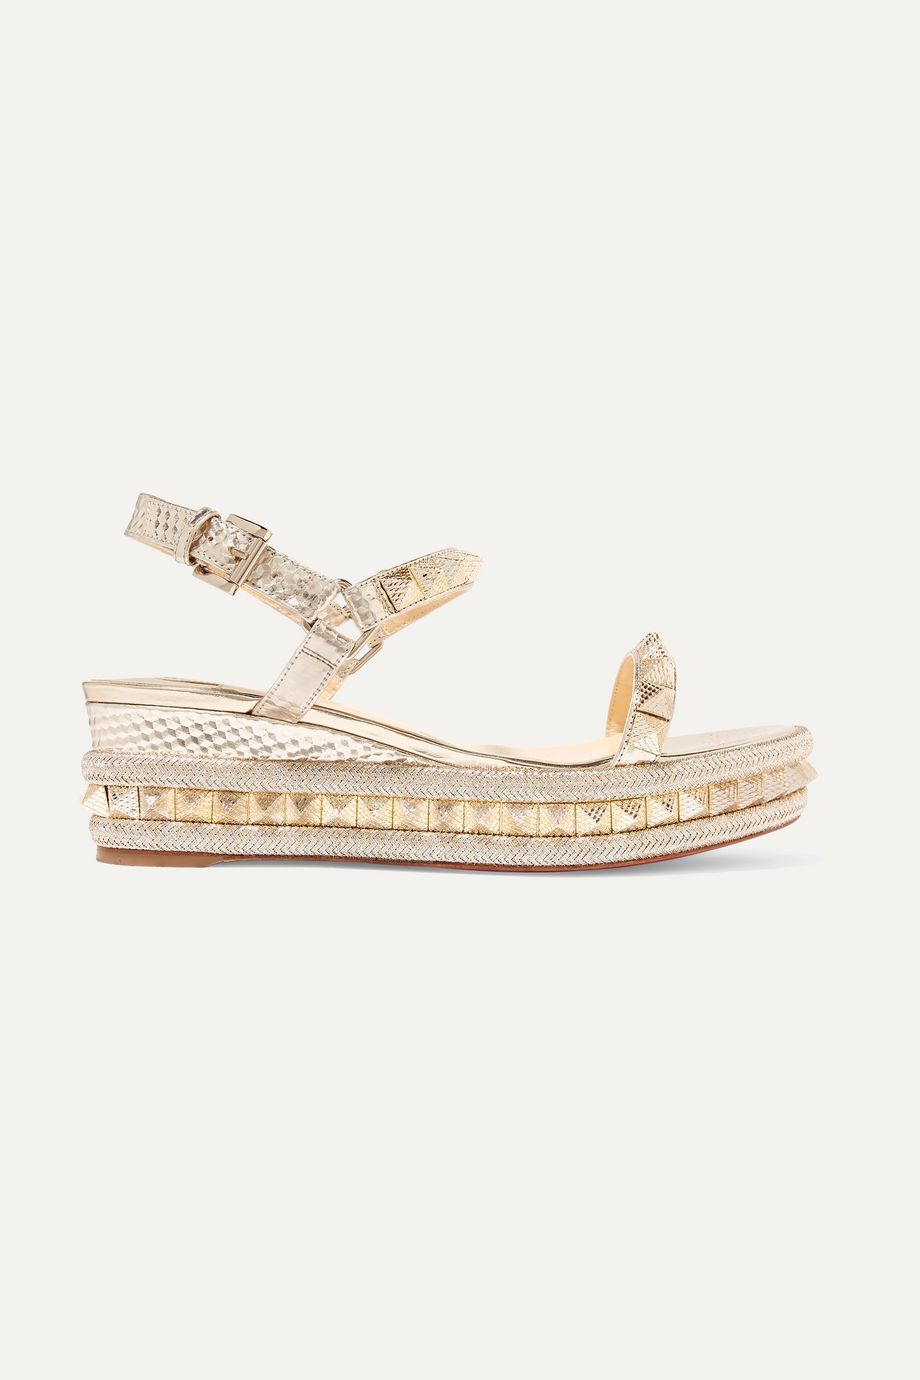 Christian Louboutin Pyraclou 60 spiked textured-leather wedge sandals